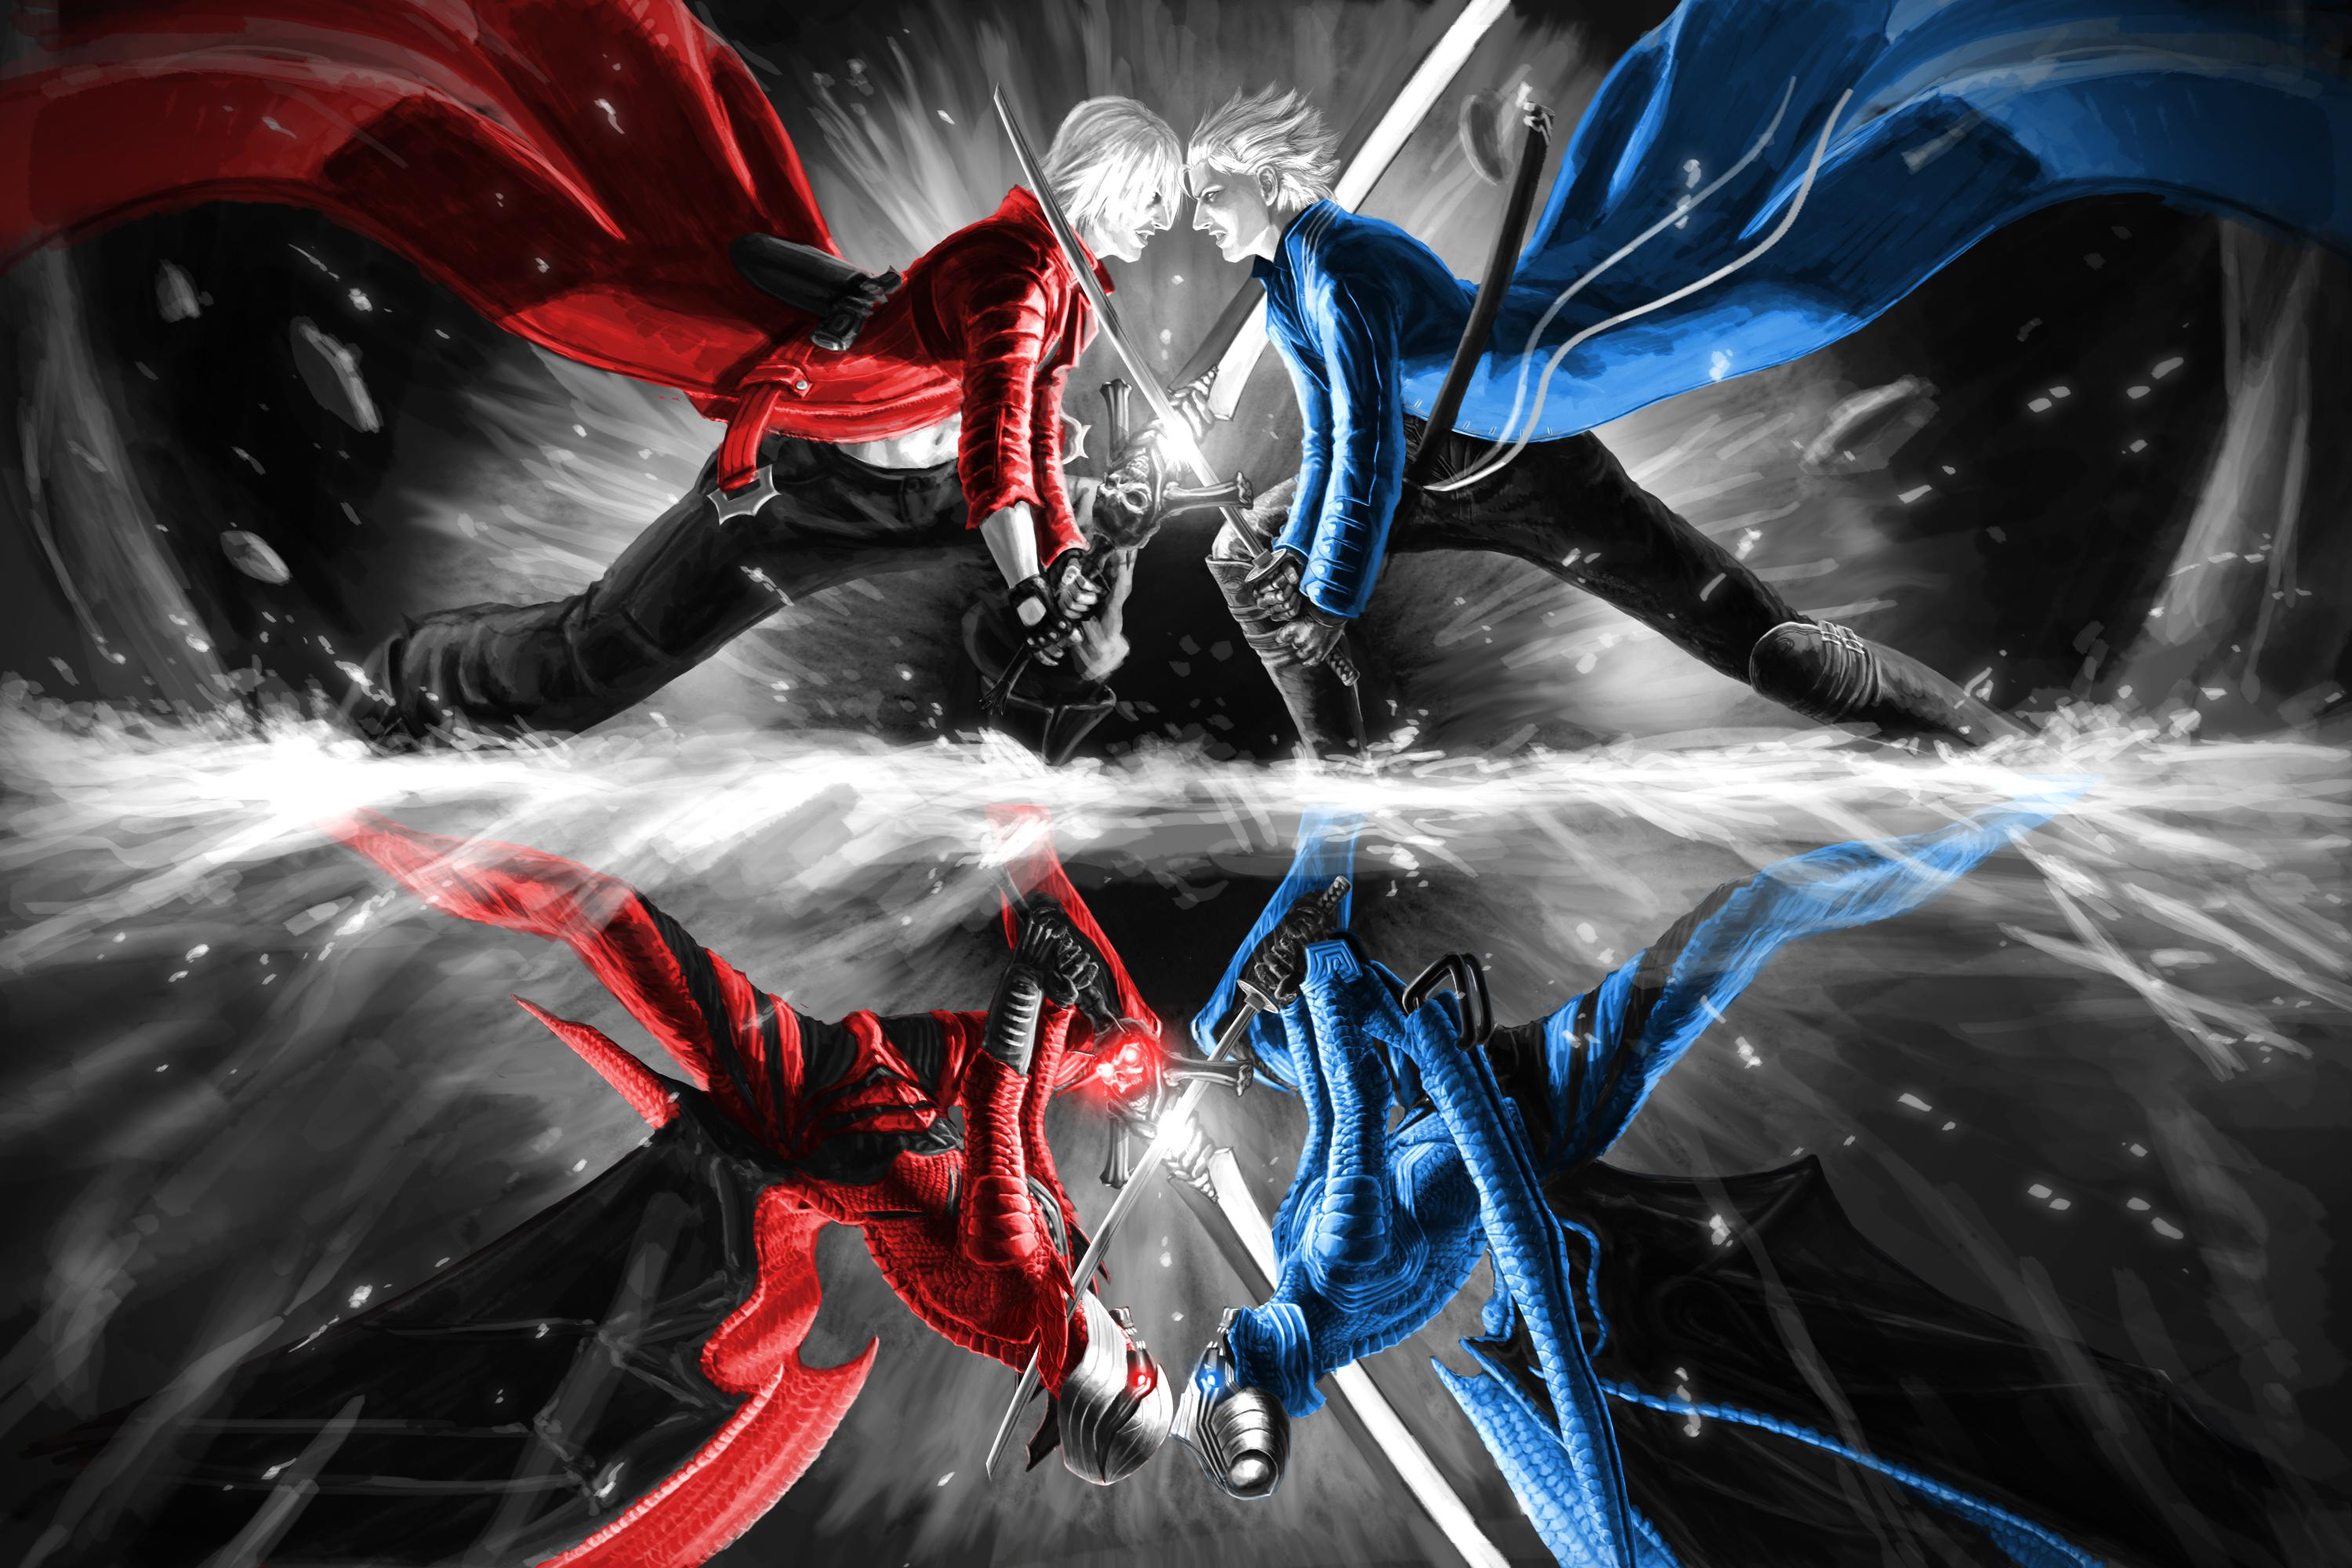 Wallpaper Devil May Cry E screenshot K Games